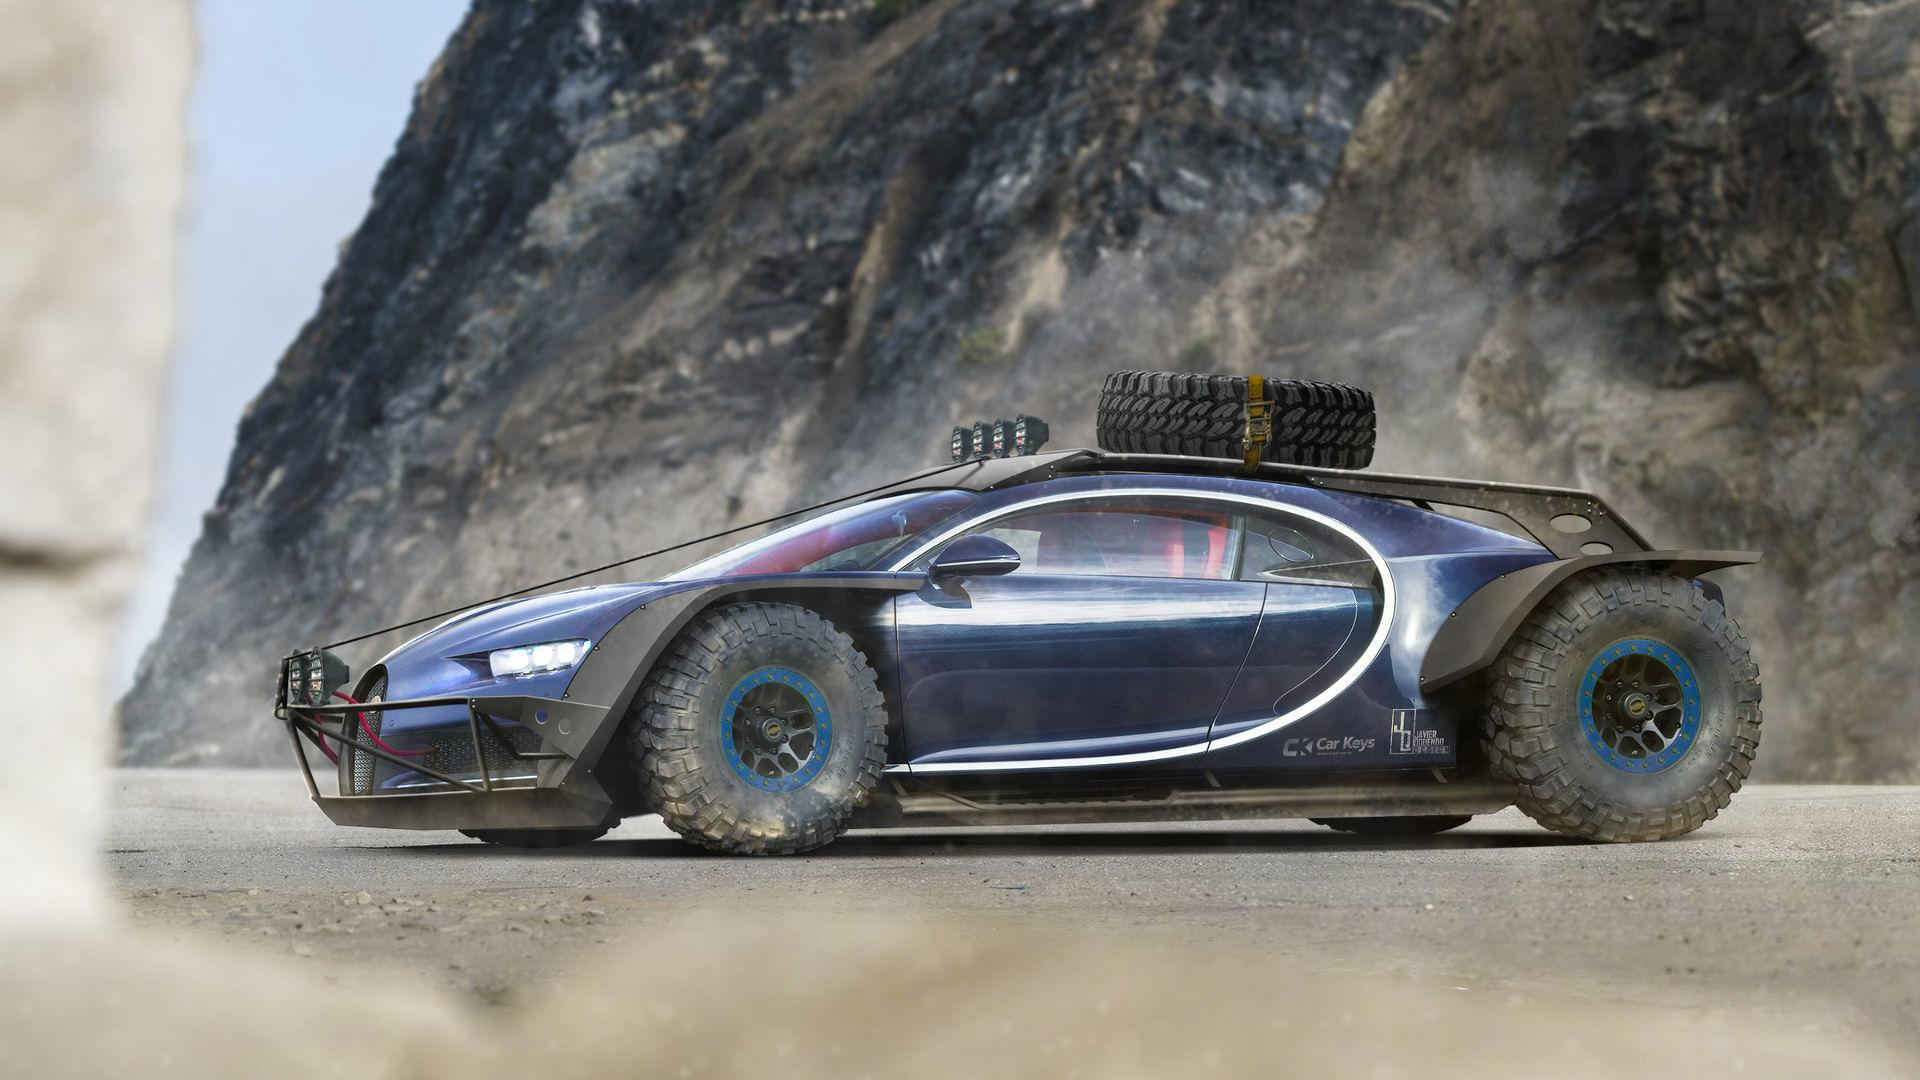 Battle Car Renders Of Supercars Gives Us Hope For The